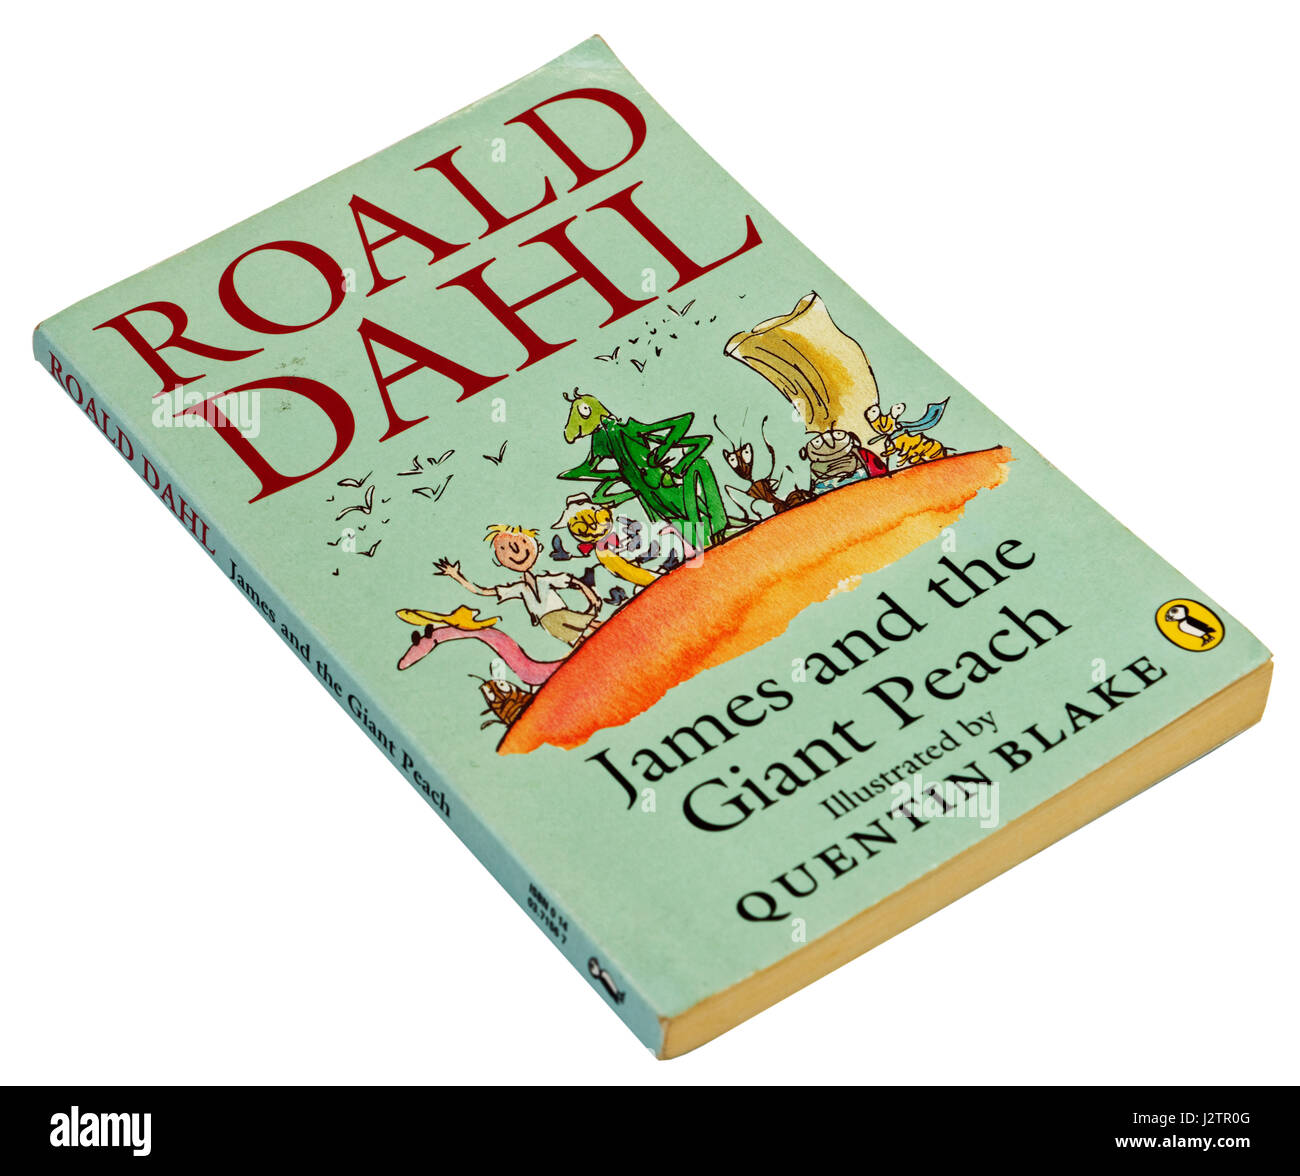 James and the Giant Peach by Roald Dahl - Stock Image